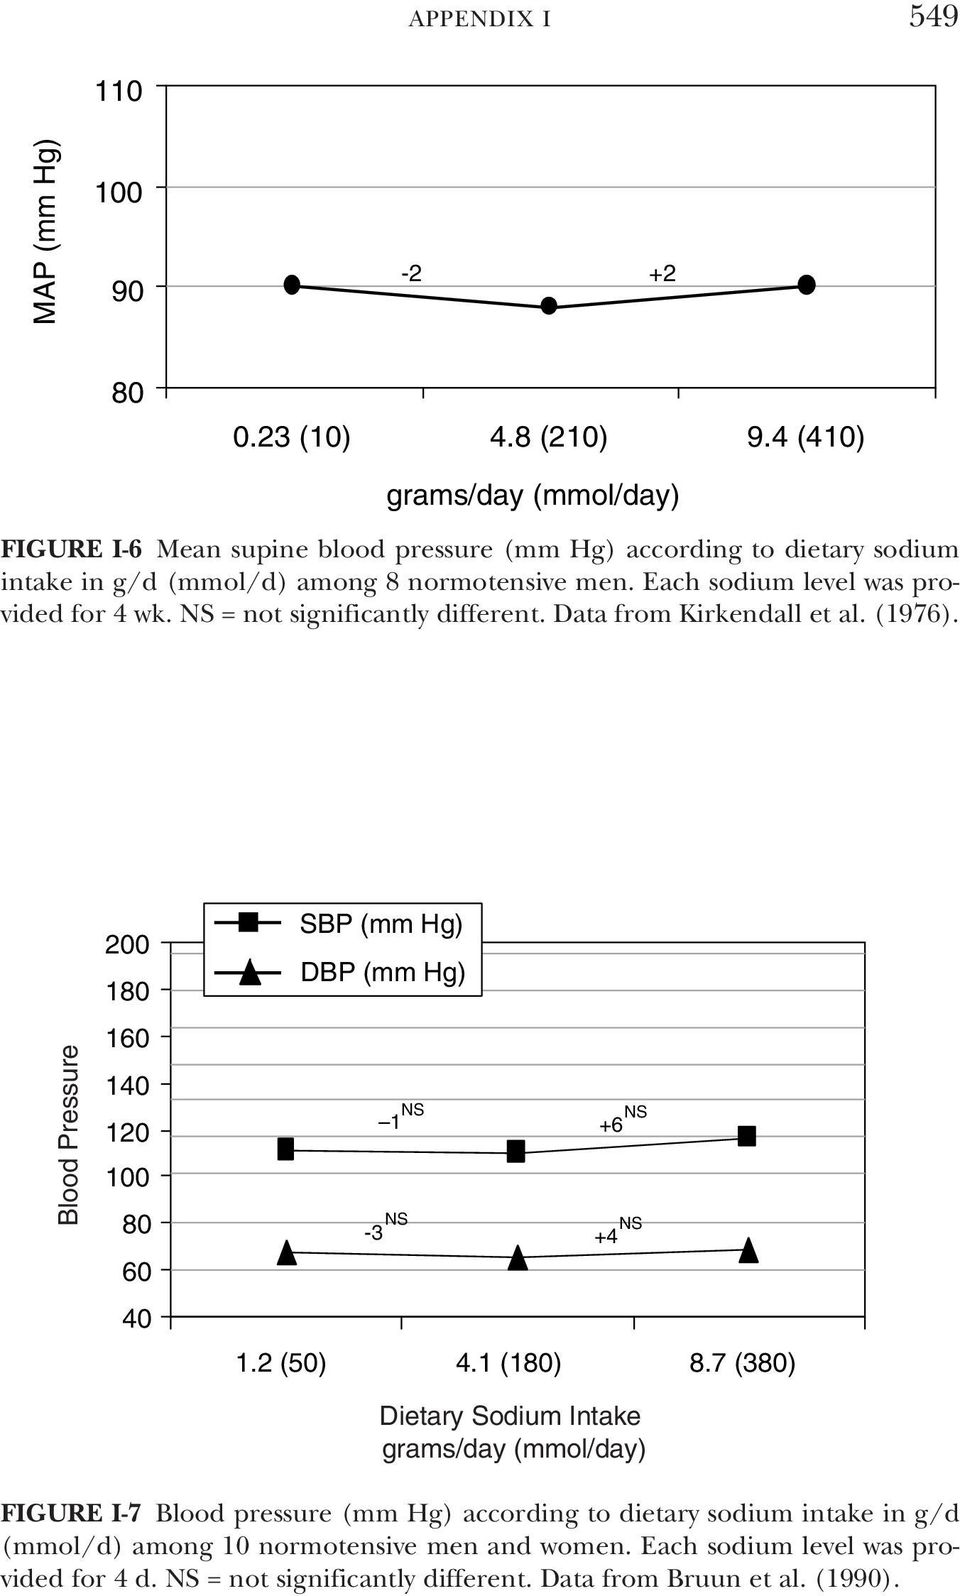 Each sodium level was provided for 4 wk. NS = not significantly different. Data from Kirkendall et al. (1976). 1 1 NS +6 NS -3 NS +4 NS 1.